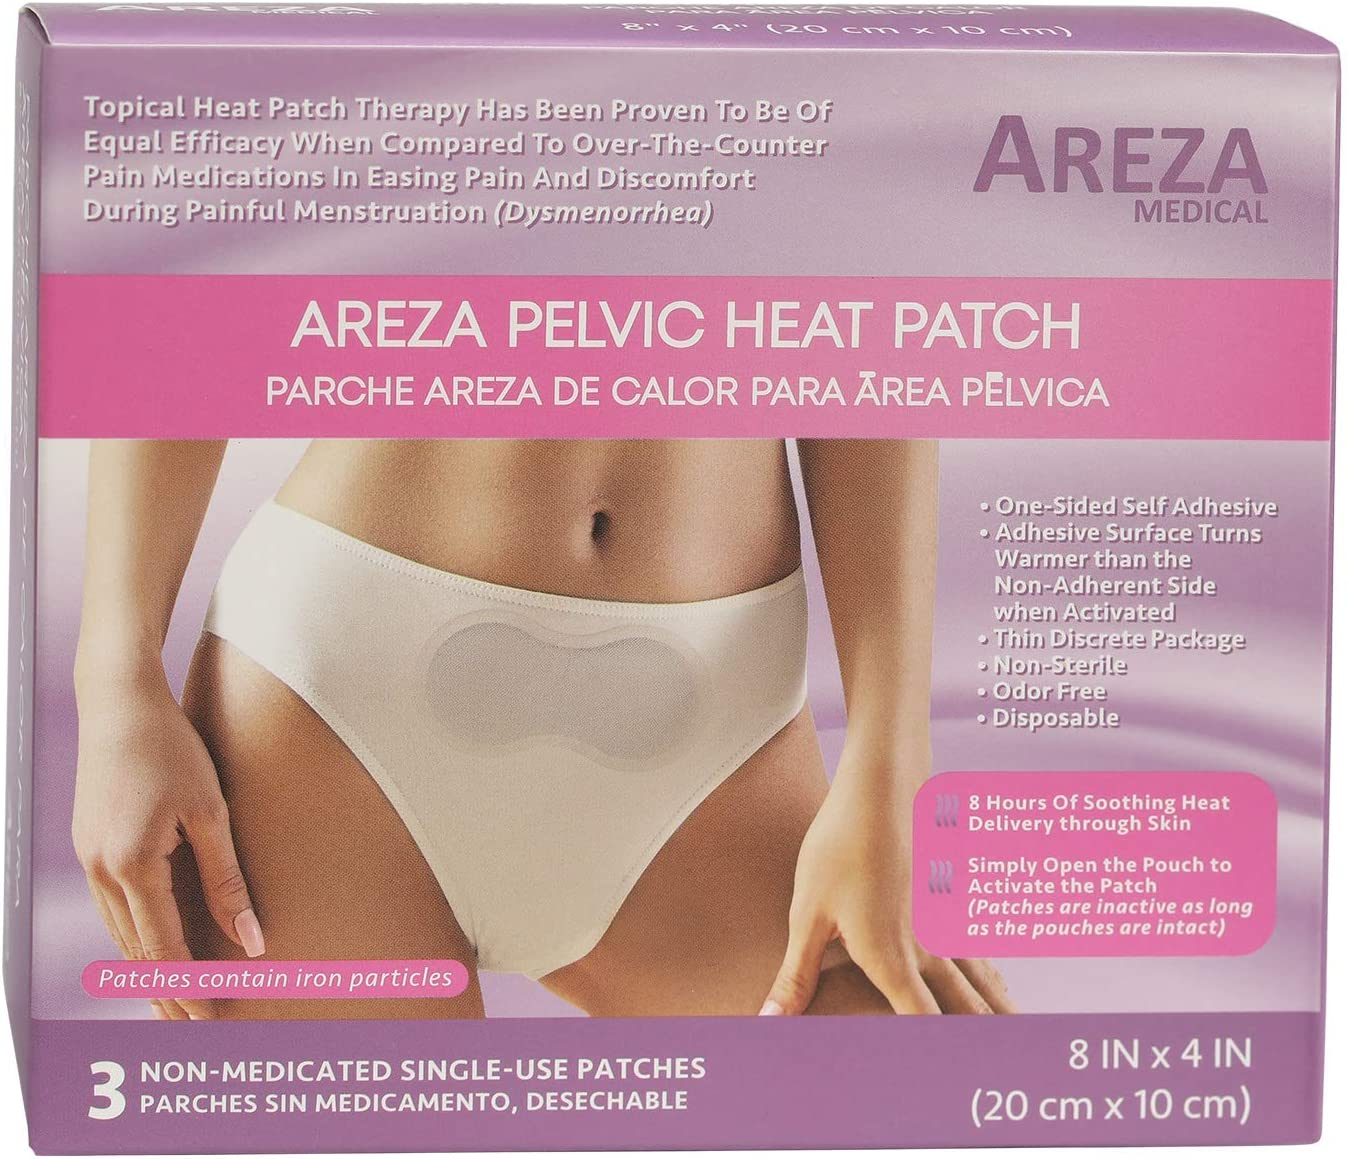 "Pelvic Heat Patch 8"" x 4"" Self Adhesive by Areza Medical (Menstrual Heat Patch)"